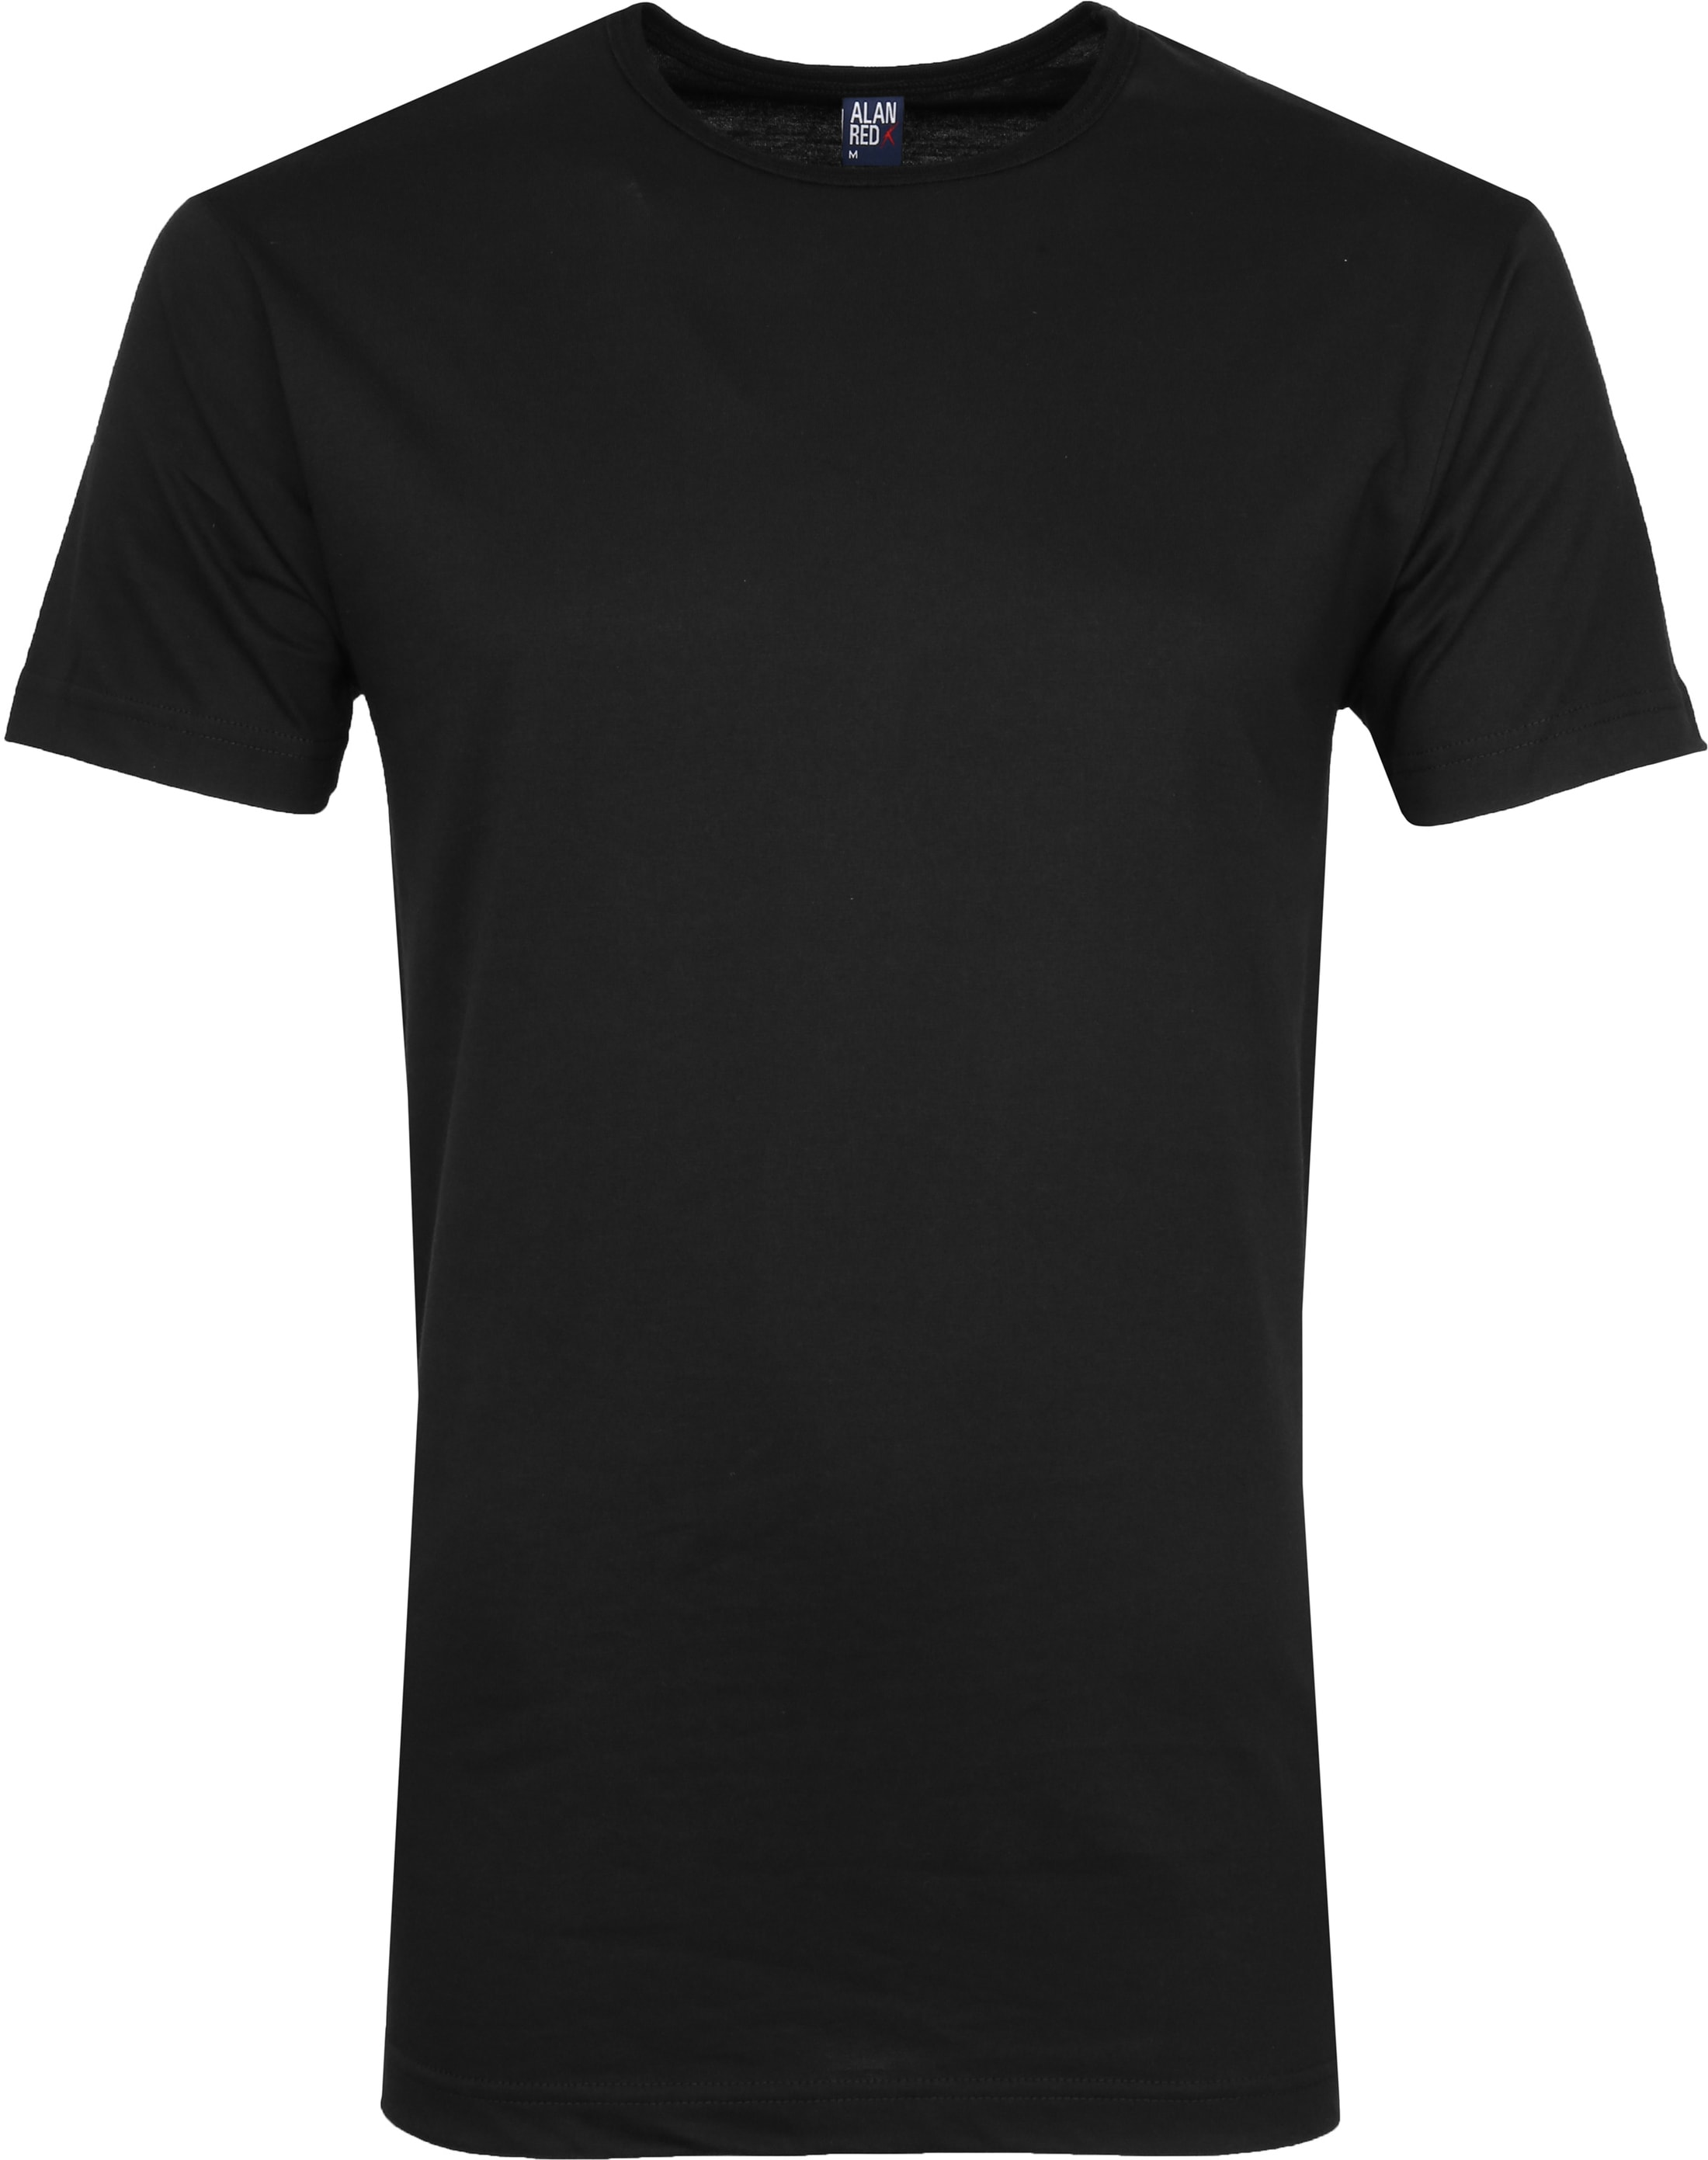 Alan Red Derby O-Neck T-Shirt Black (2Pack) foto 1